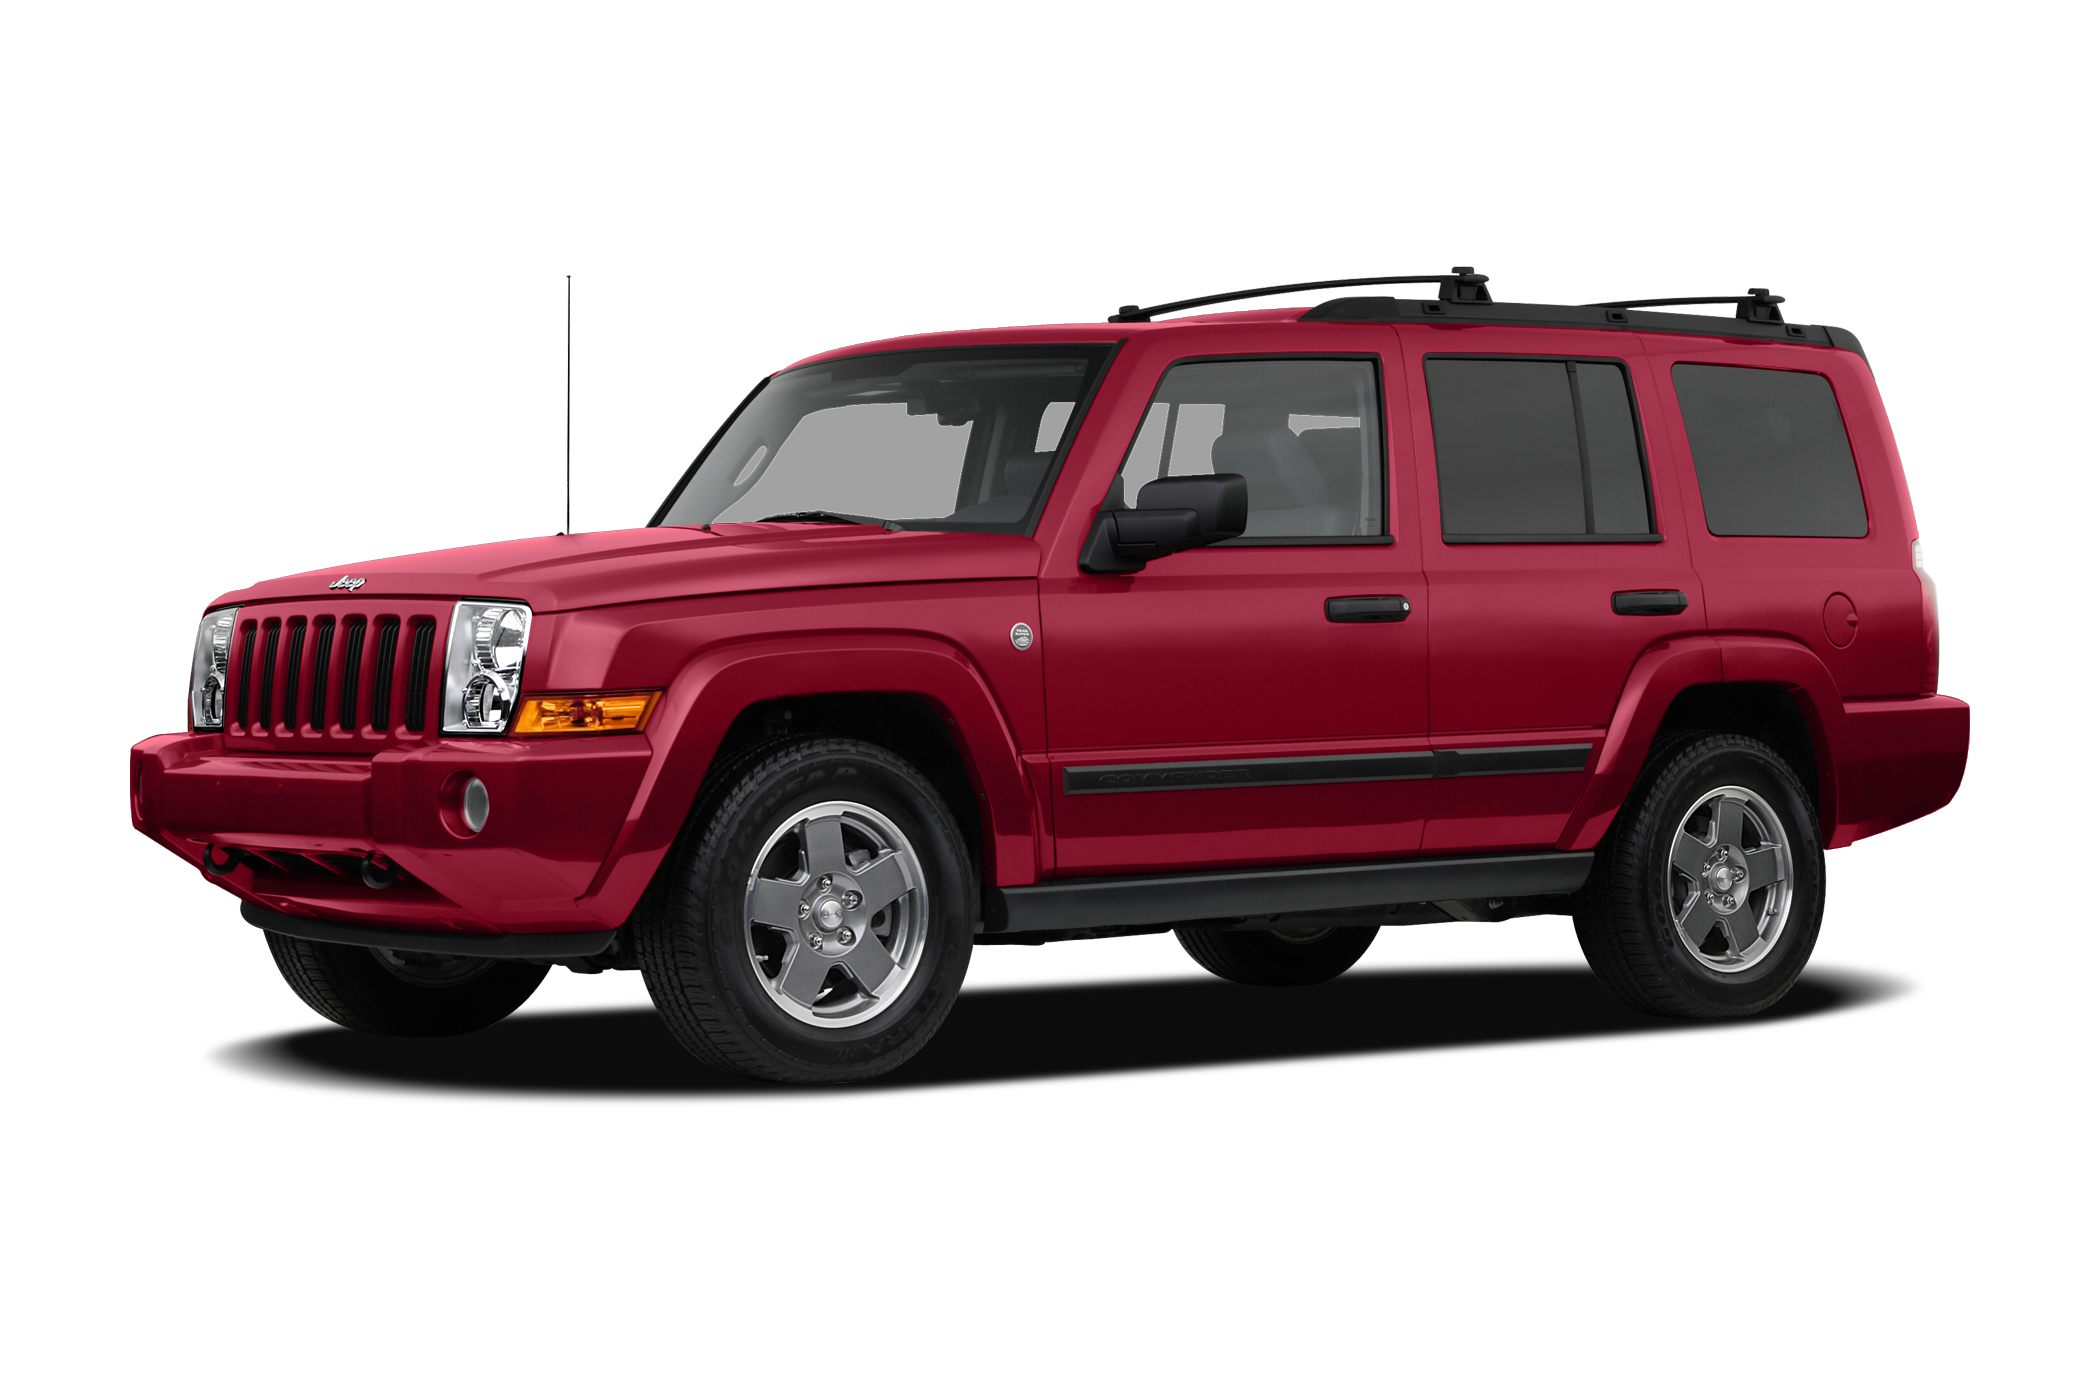 2007 Jeep Commander Limited SUV for sale in Quakertown for $14,982 with 99,251 miles